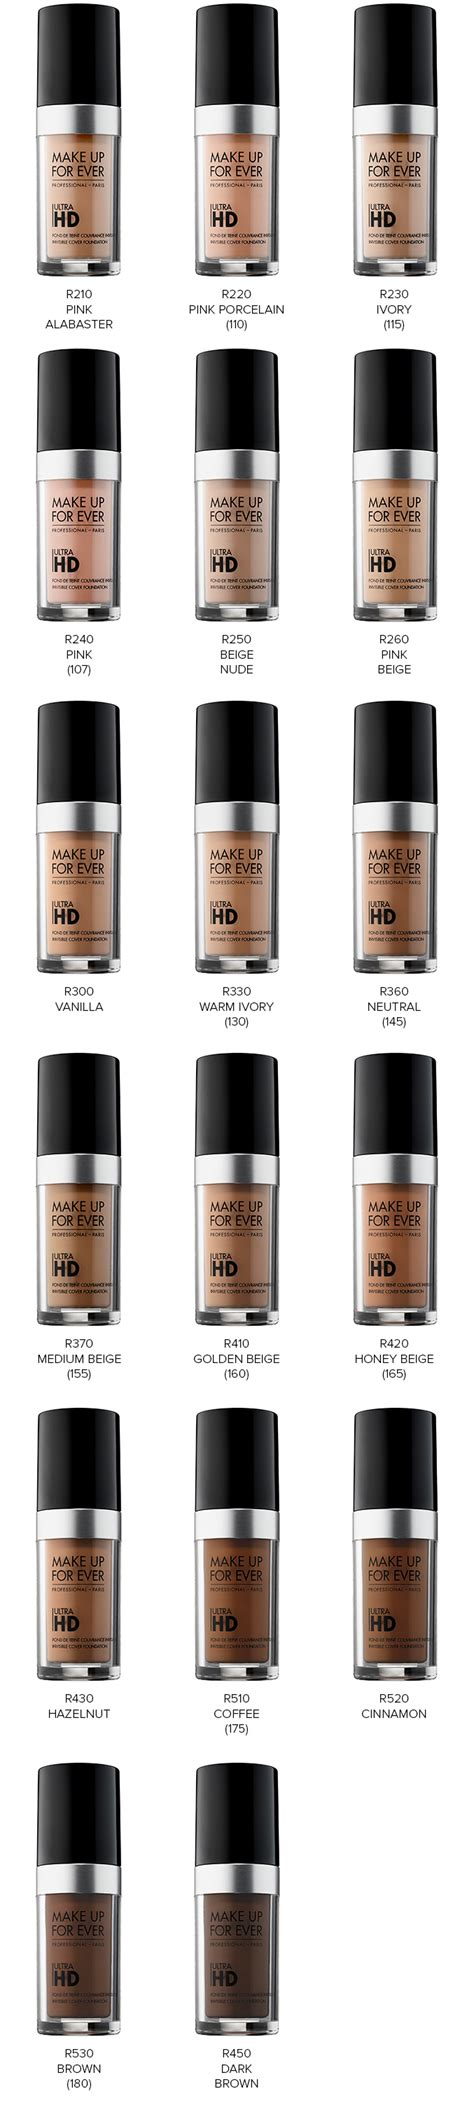 Makeup Forever Ultra Hd Foundation make up for ultra hd foundation stick foundation fashion trend seeker